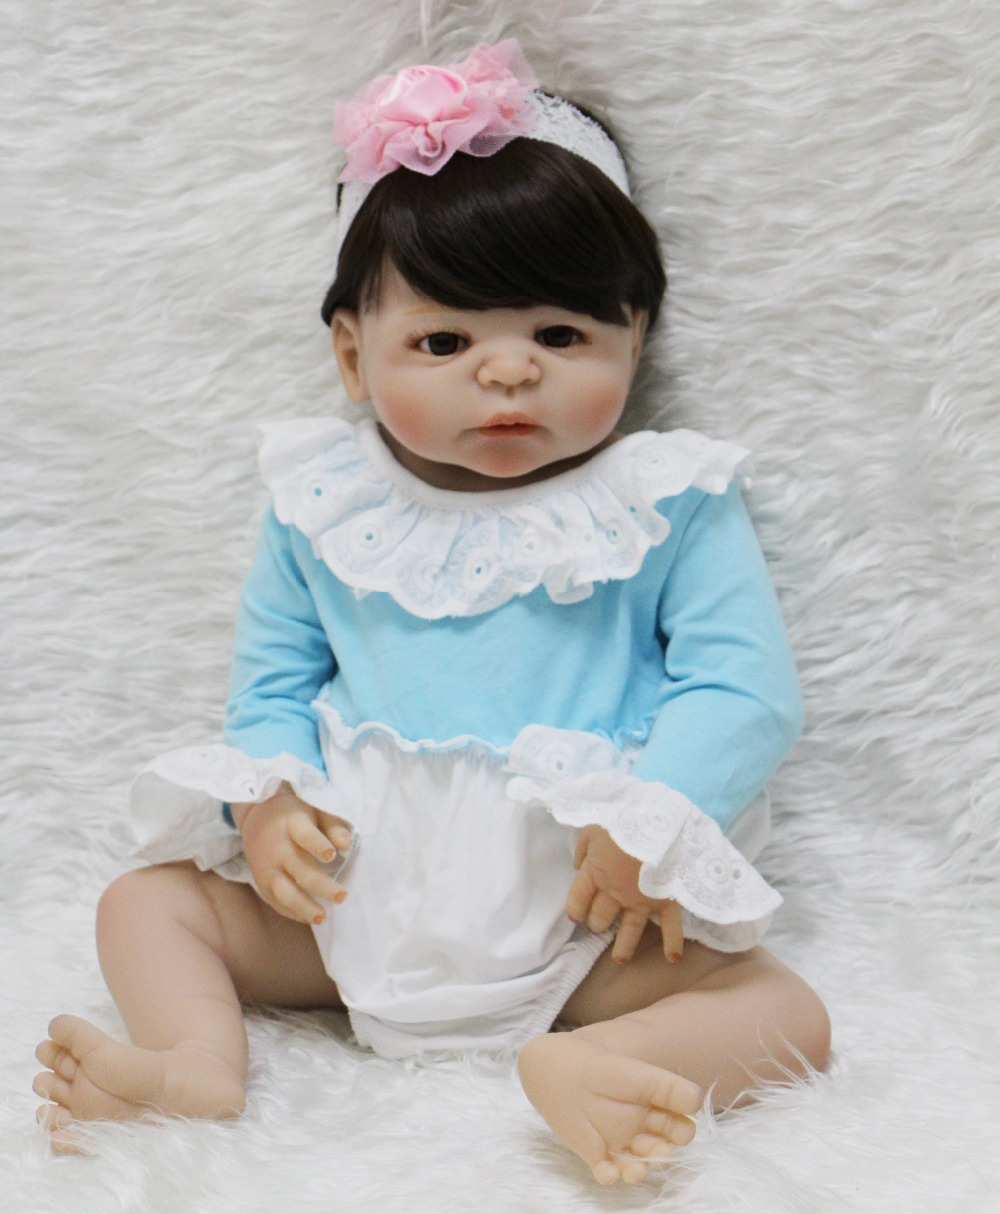 22inch Lifelike Silicone Reborn Baby Menina Alive adorable face can enter water dolls bebe Infant Clothes Truly Kids Playmates22inch Lifelike Silicone Reborn Baby Menina Alive adorable face can enter water dolls bebe Infant Clothes Truly Kids Playmates